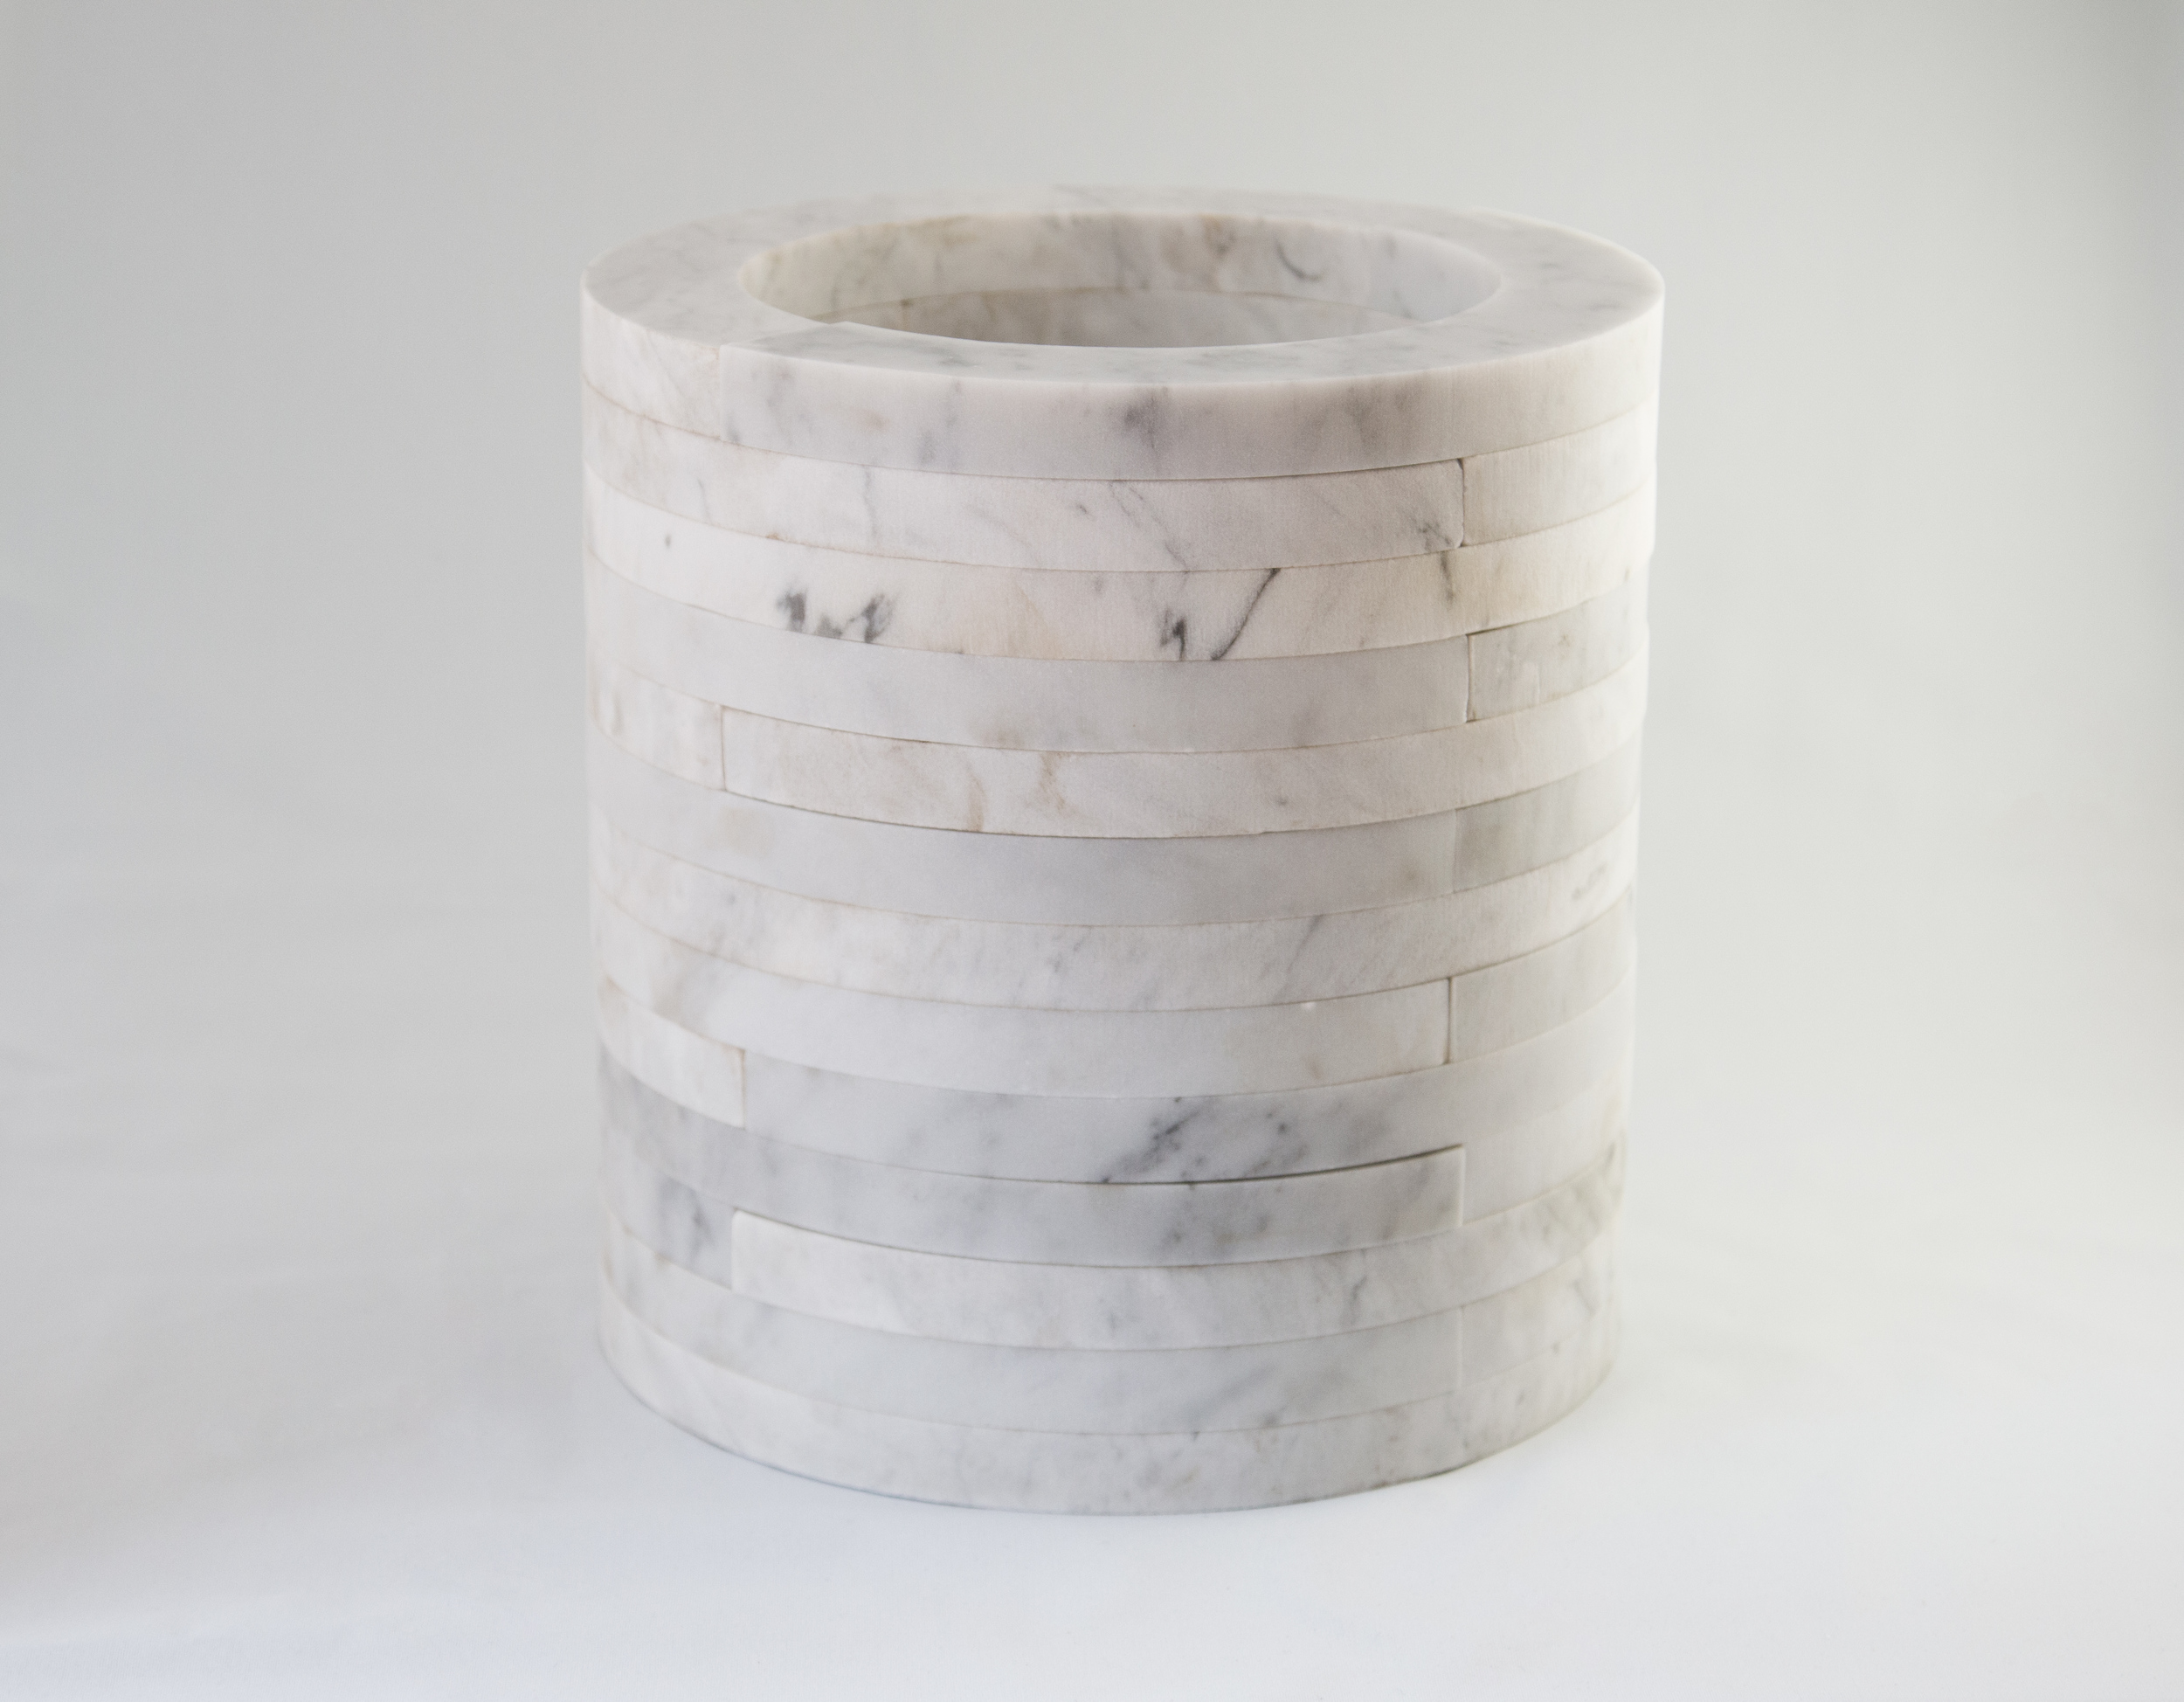 Marble urn made of multiple pieces